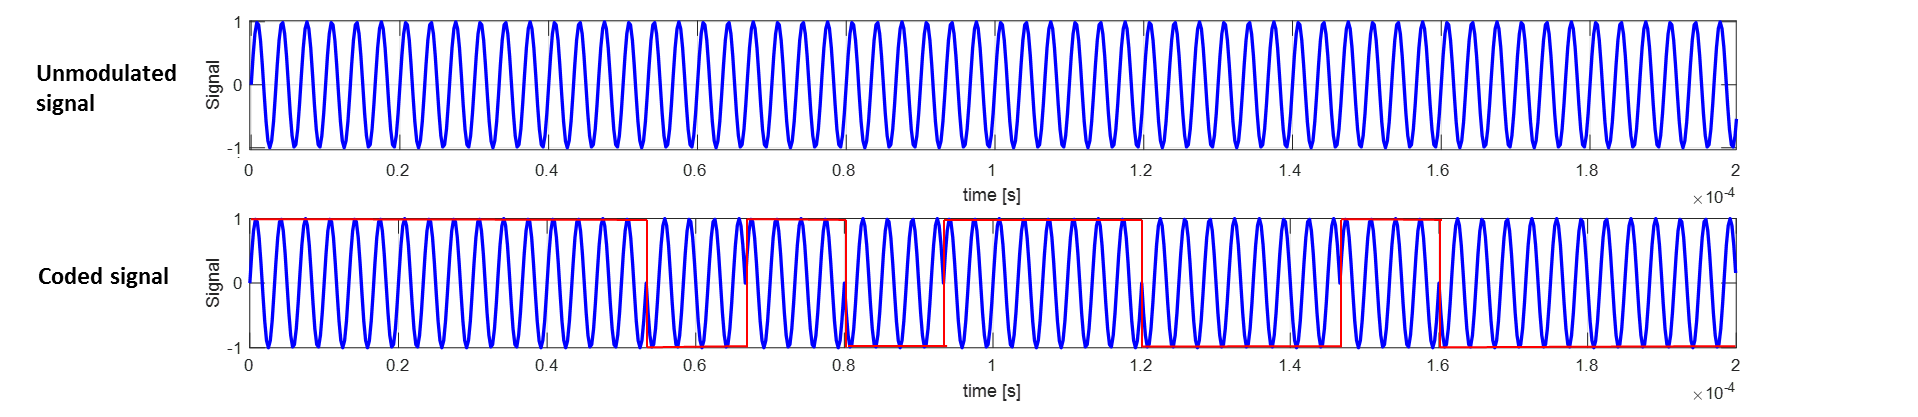 Fig. 2: (Top) Conventional unmodulated signal transmitted for seabed mapping. (Bottom) Encoded signal, the red line corresponds to the code.